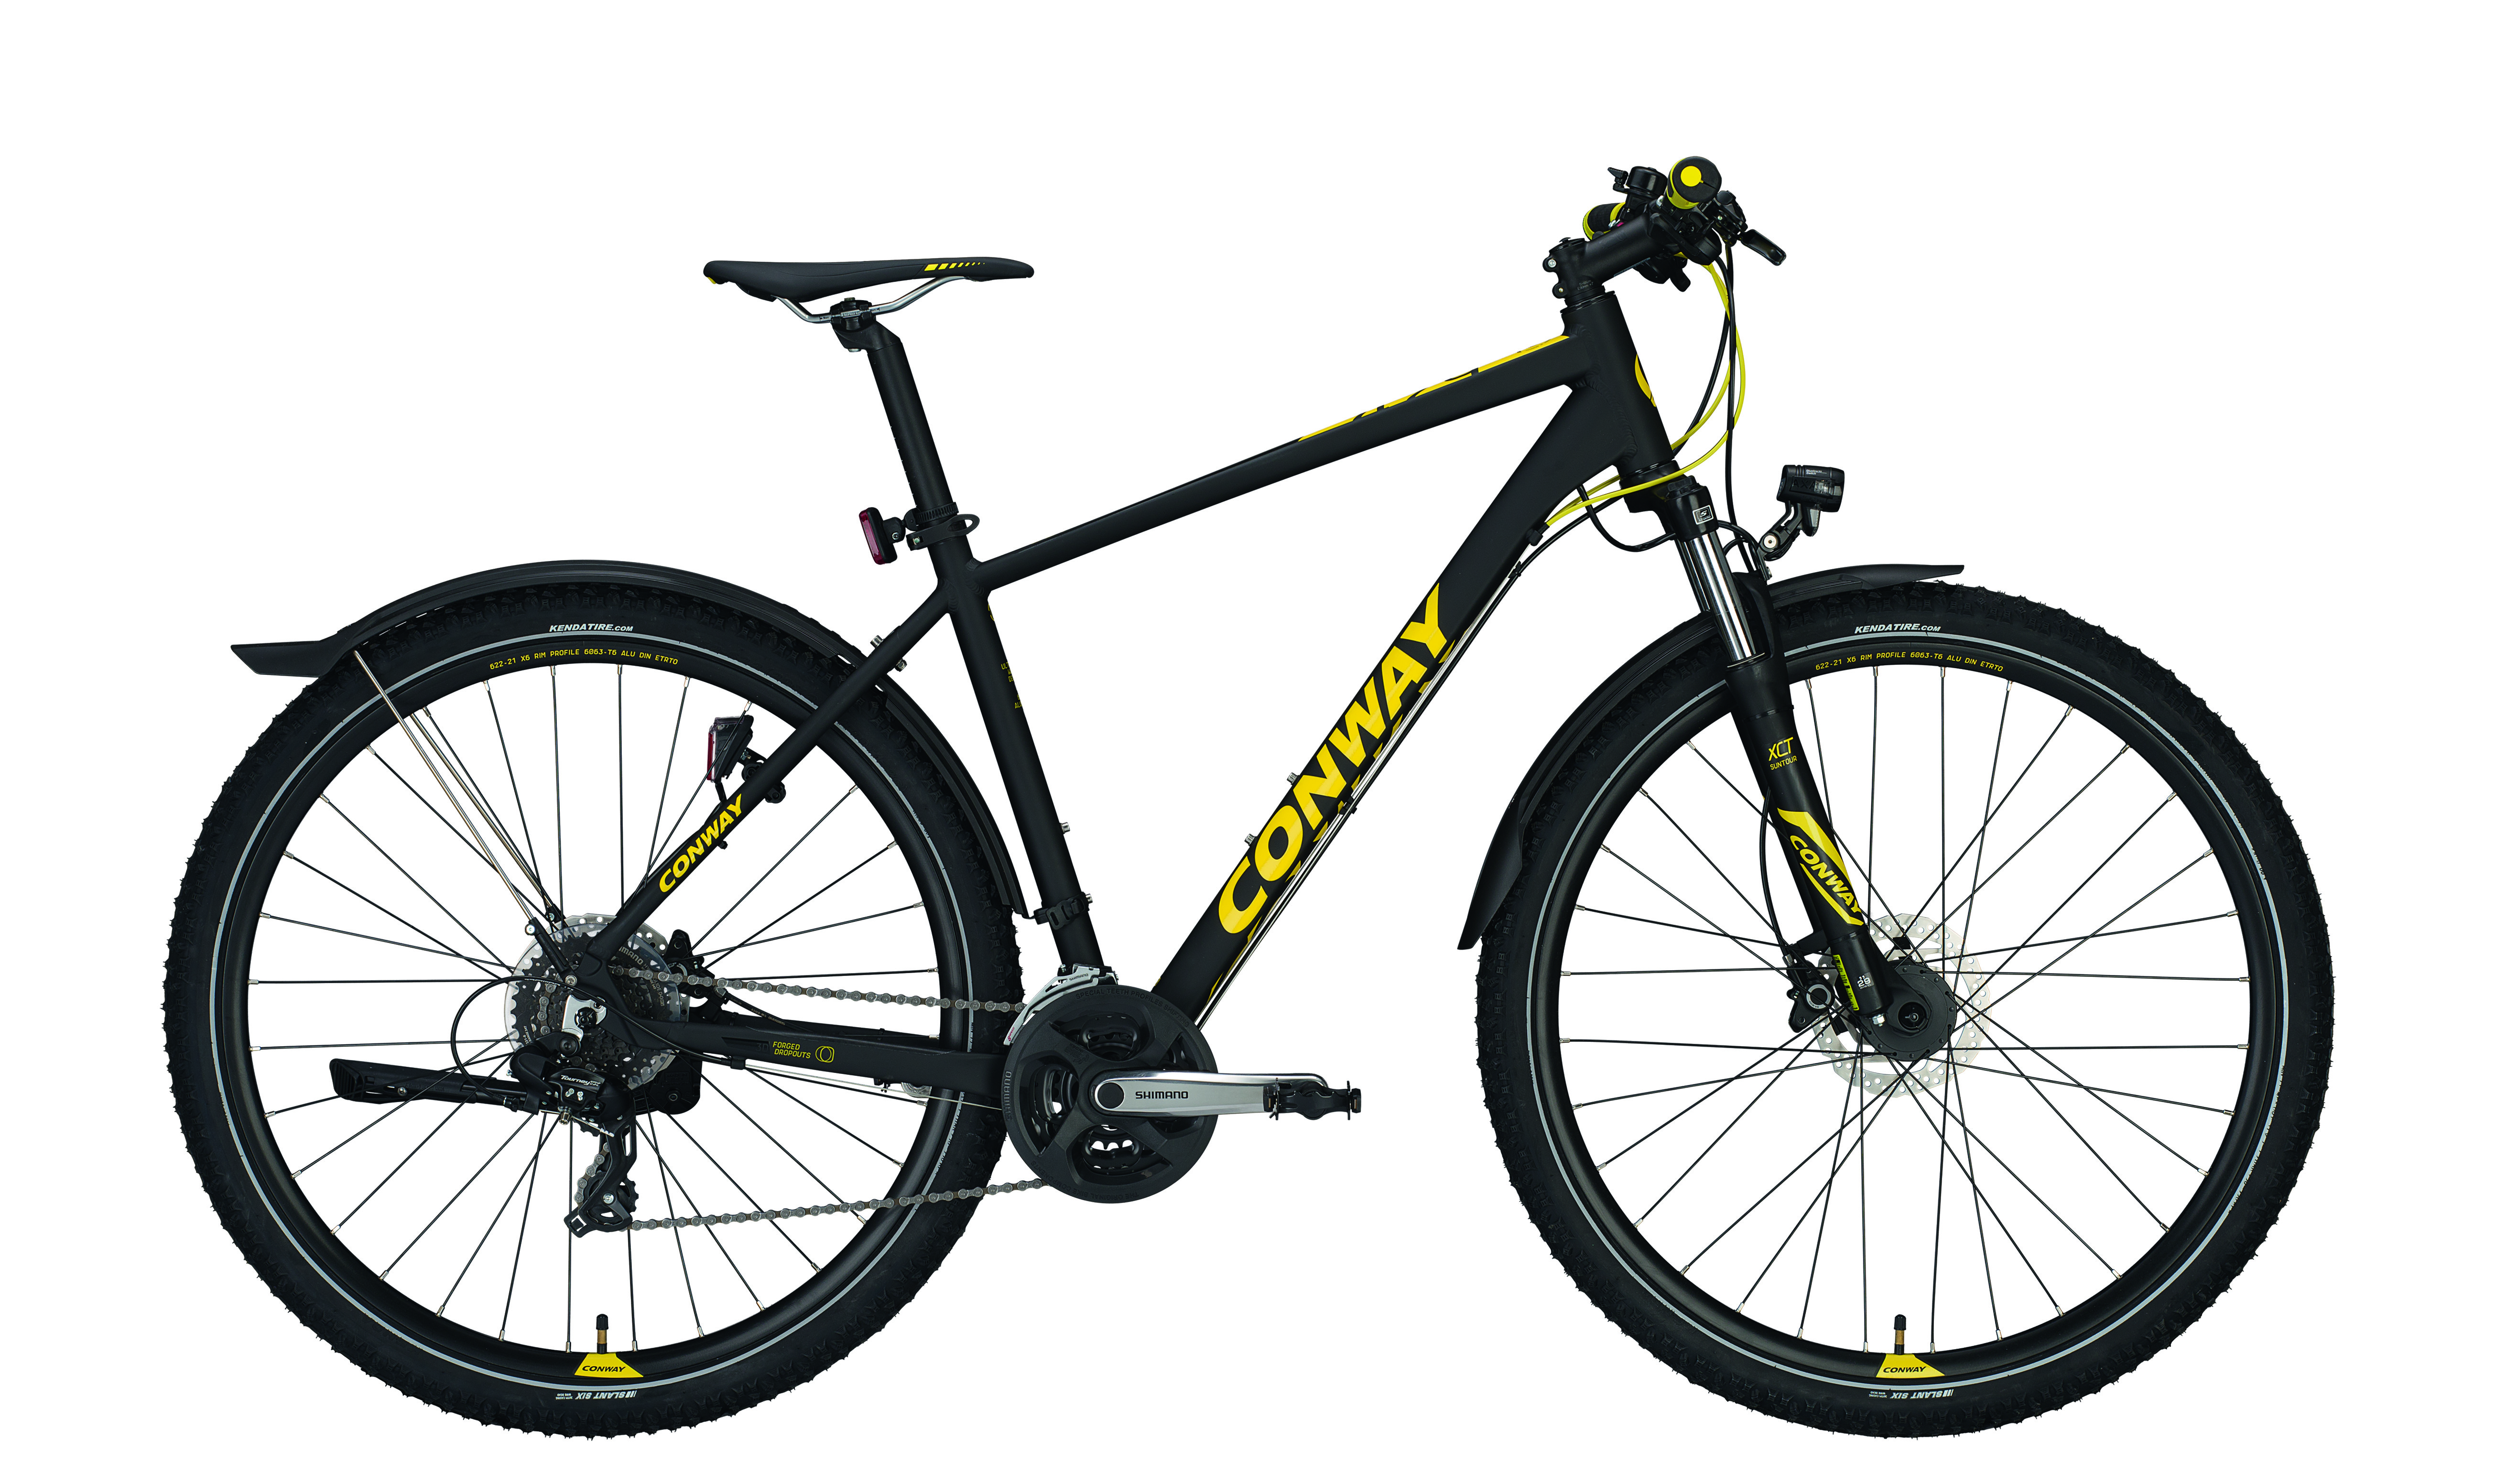 trekking conway mtb 29er mc 429 hydr schijfremmen naaf dynamo delta bikes. Black Bedroom Furniture Sets. Home Design Ideas